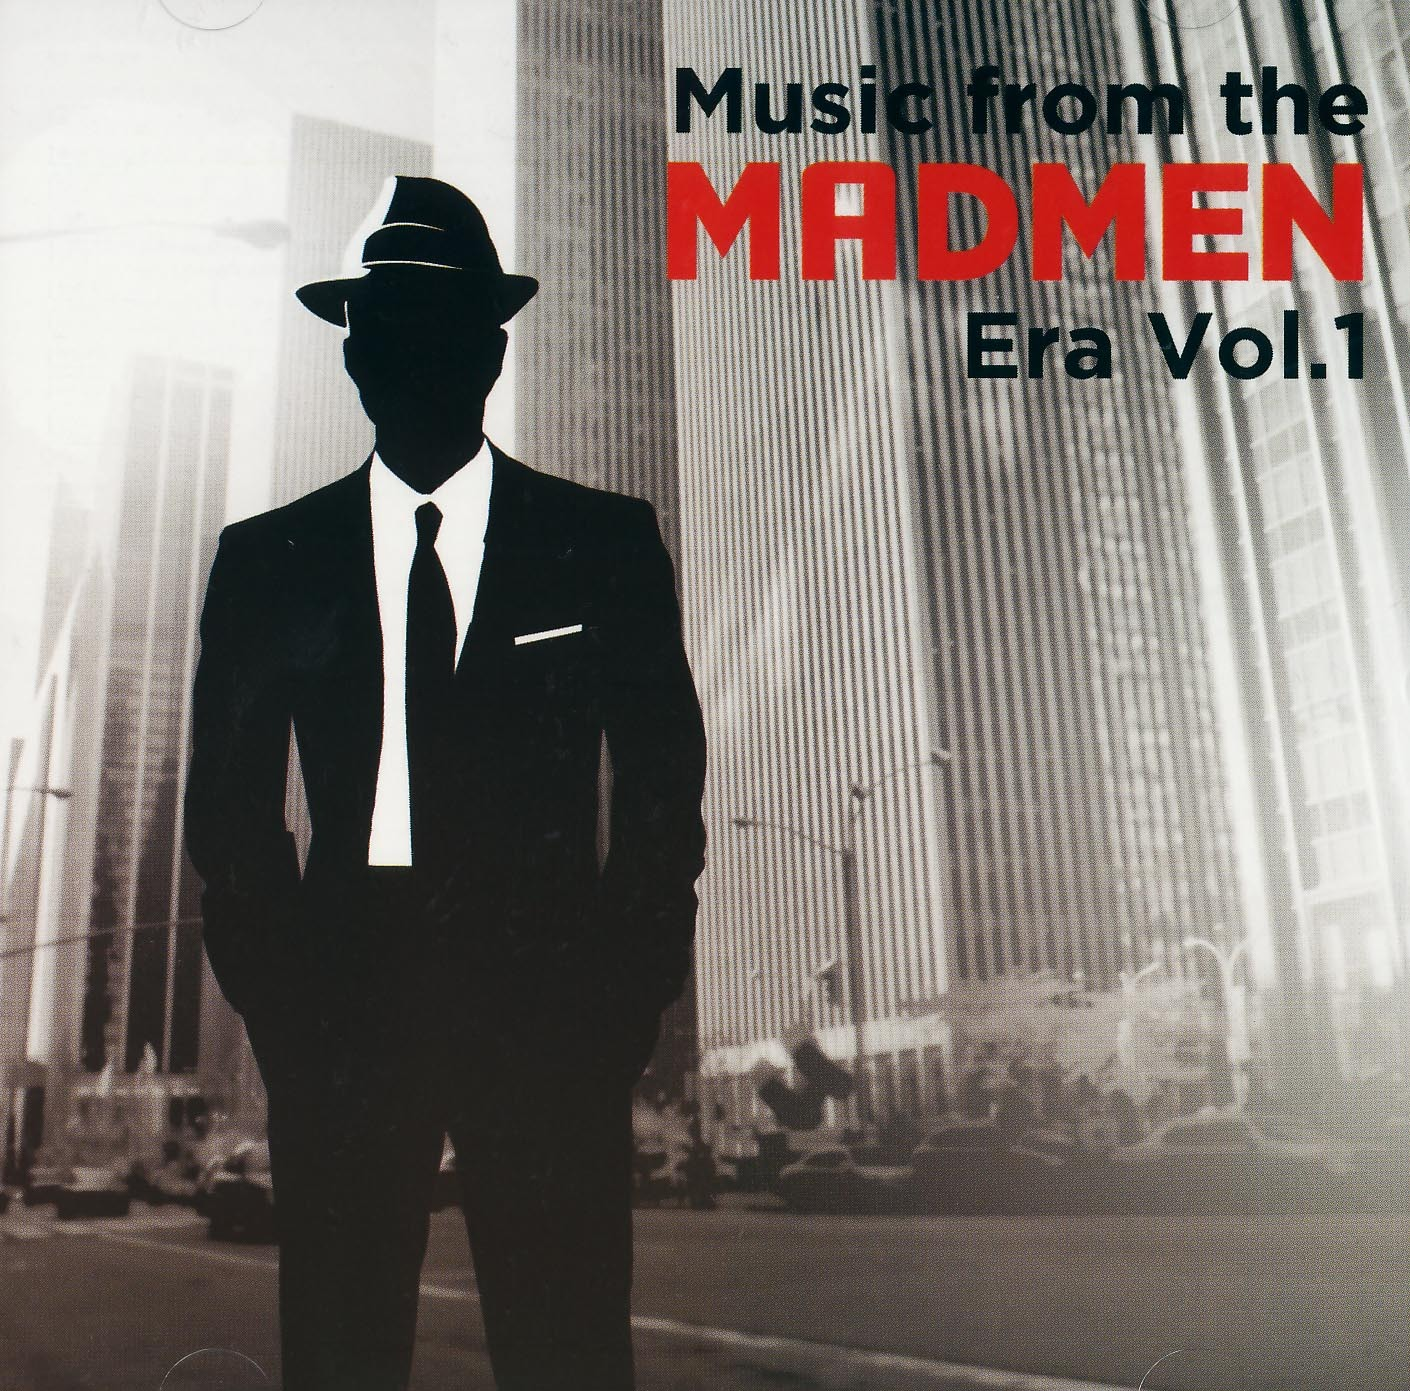 MAD MEN VOL 1 - 2 CD  MUSIC FROME THE MAD MEN ERA